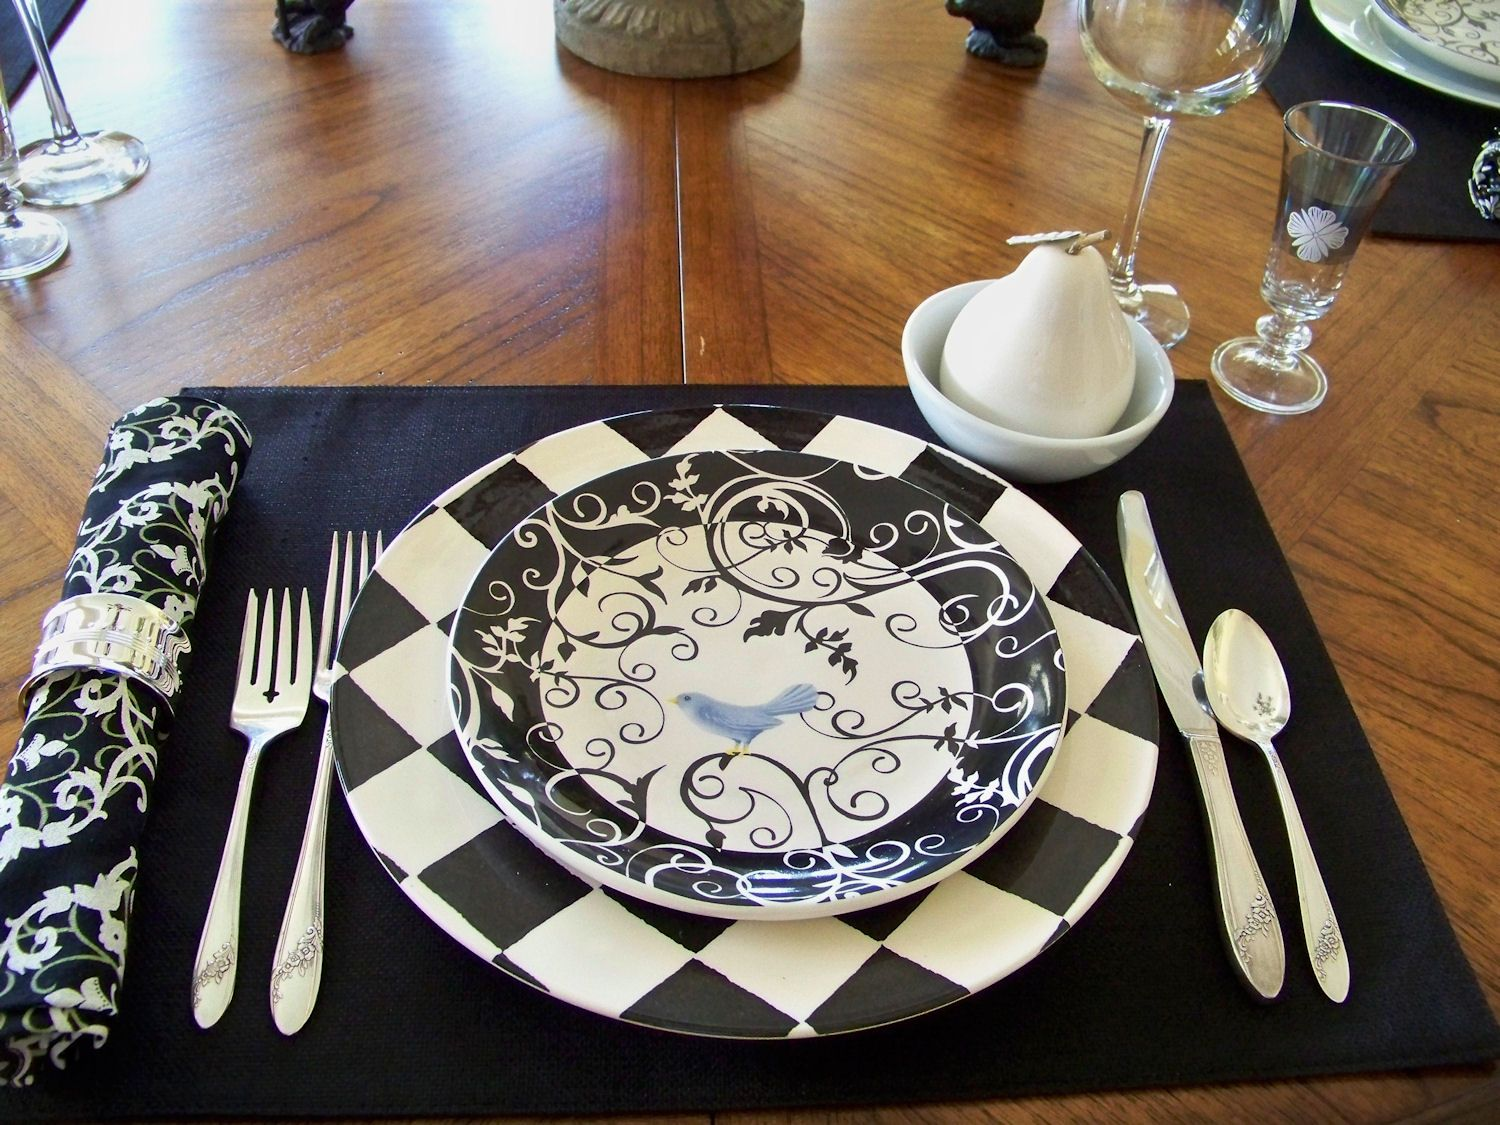 Black and white stripe charger plates - Love The Harlequin Charger Plate If You Don T Want To Go All Harlequin You Can Substitute A Bit Of Black White Damask Stripe Etc